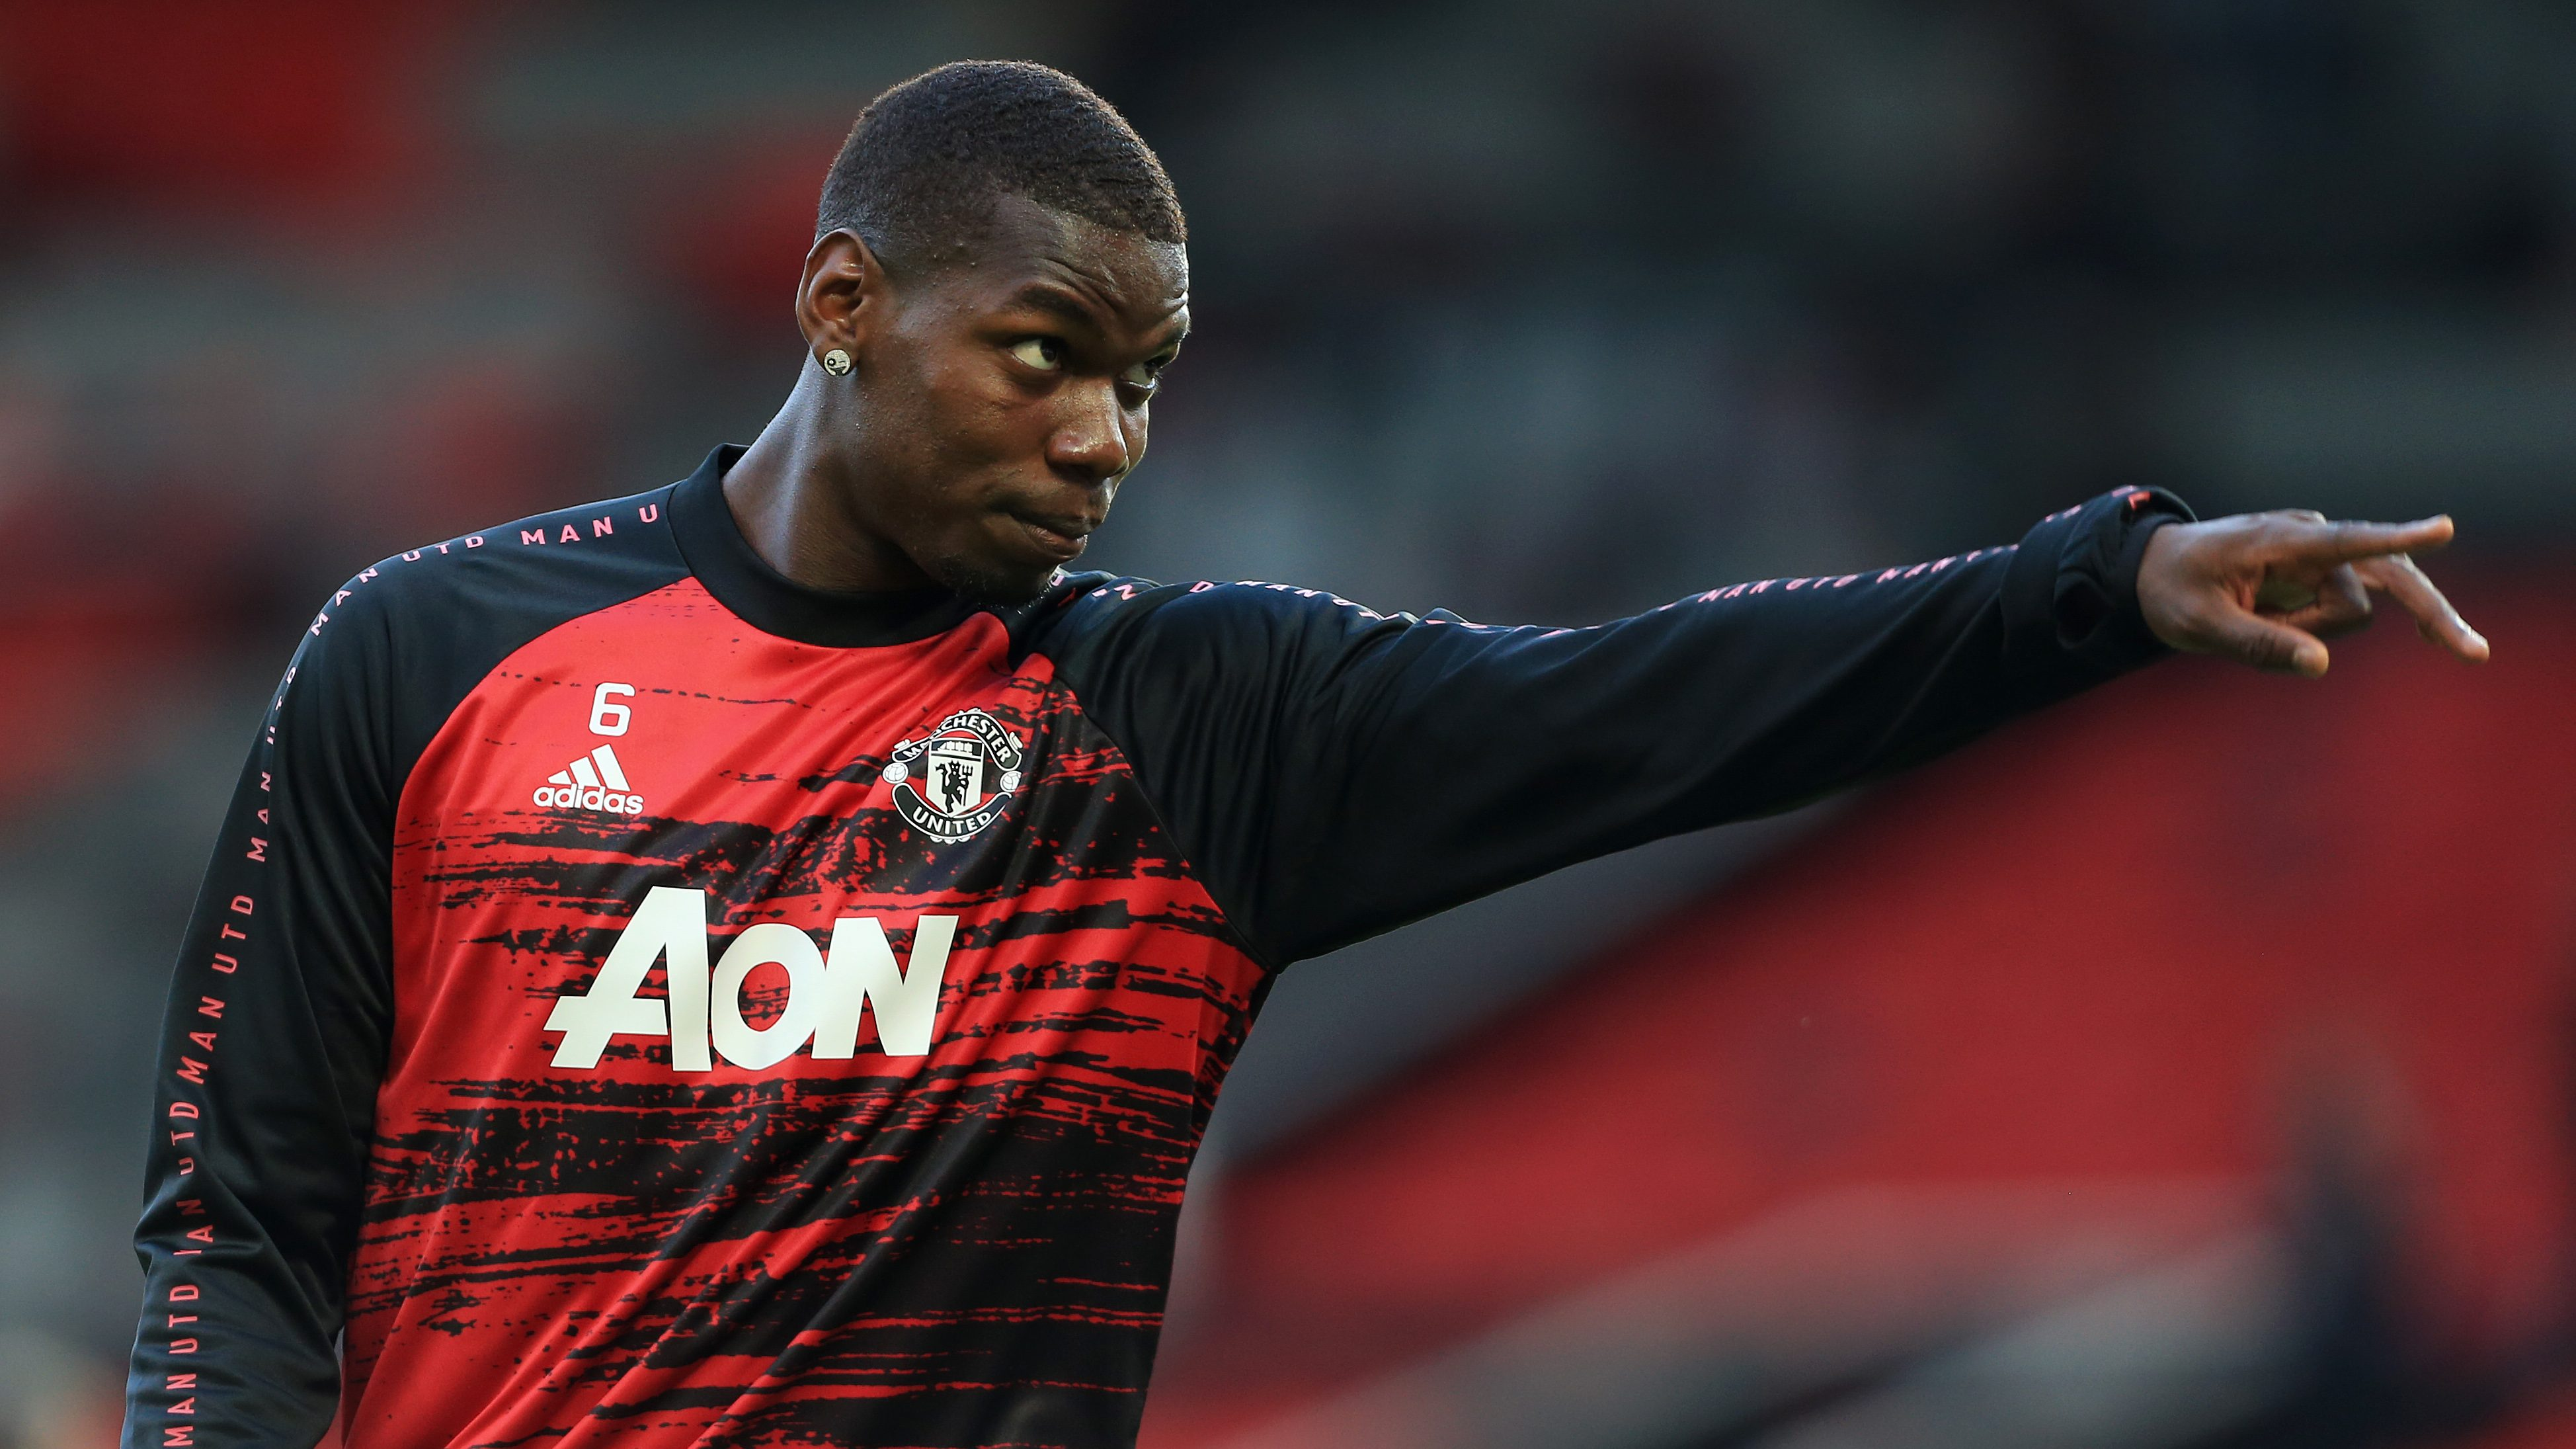 Paul Pogba contract talks to begin after Man United season ends